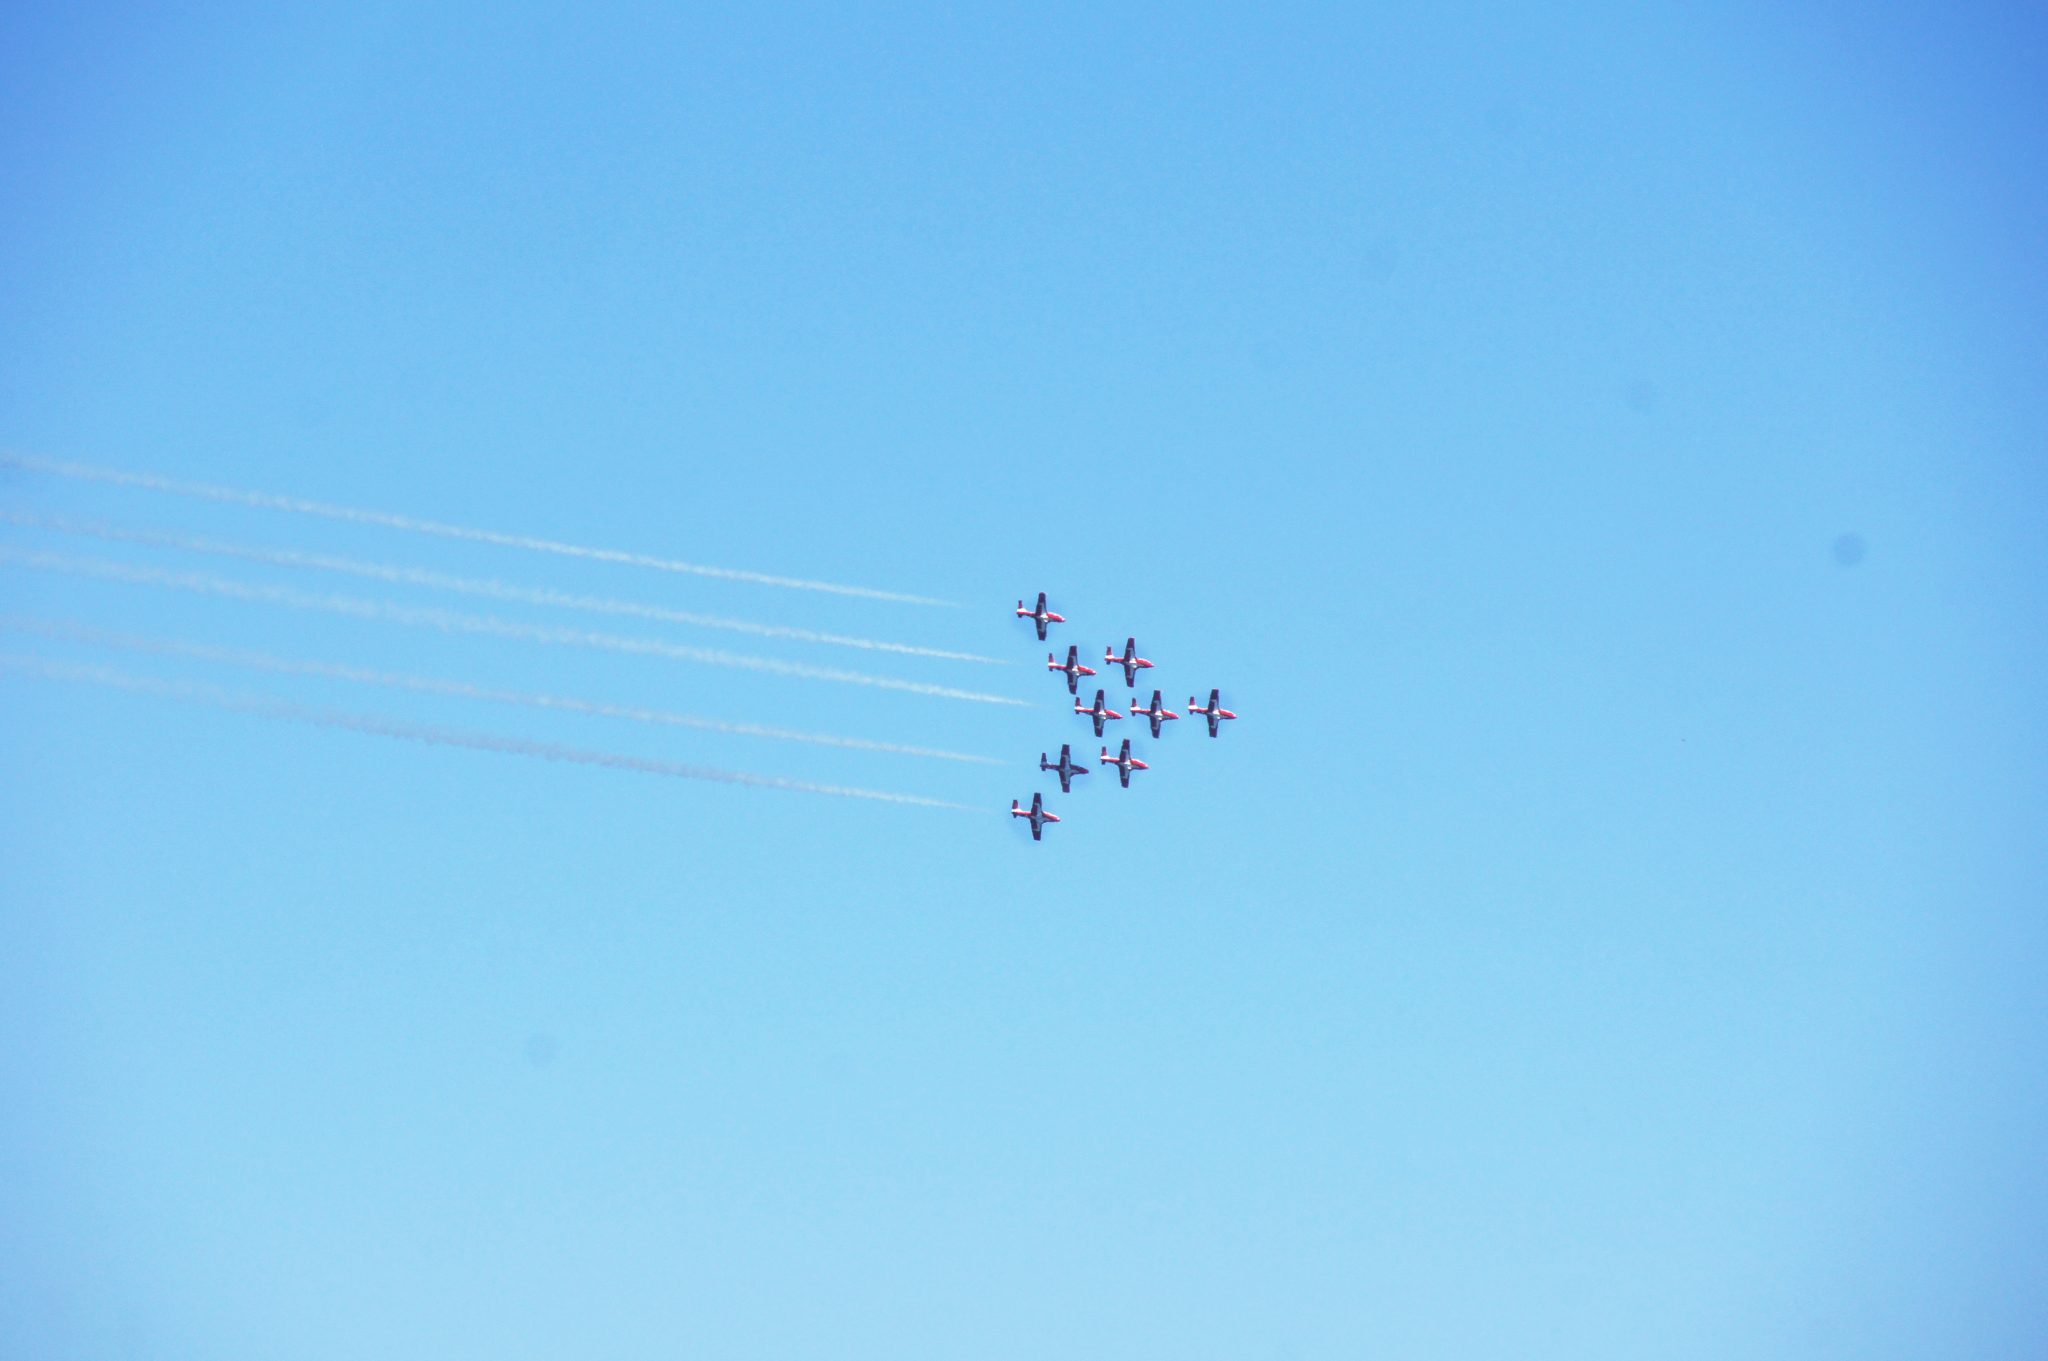 Blue Angels flying performance